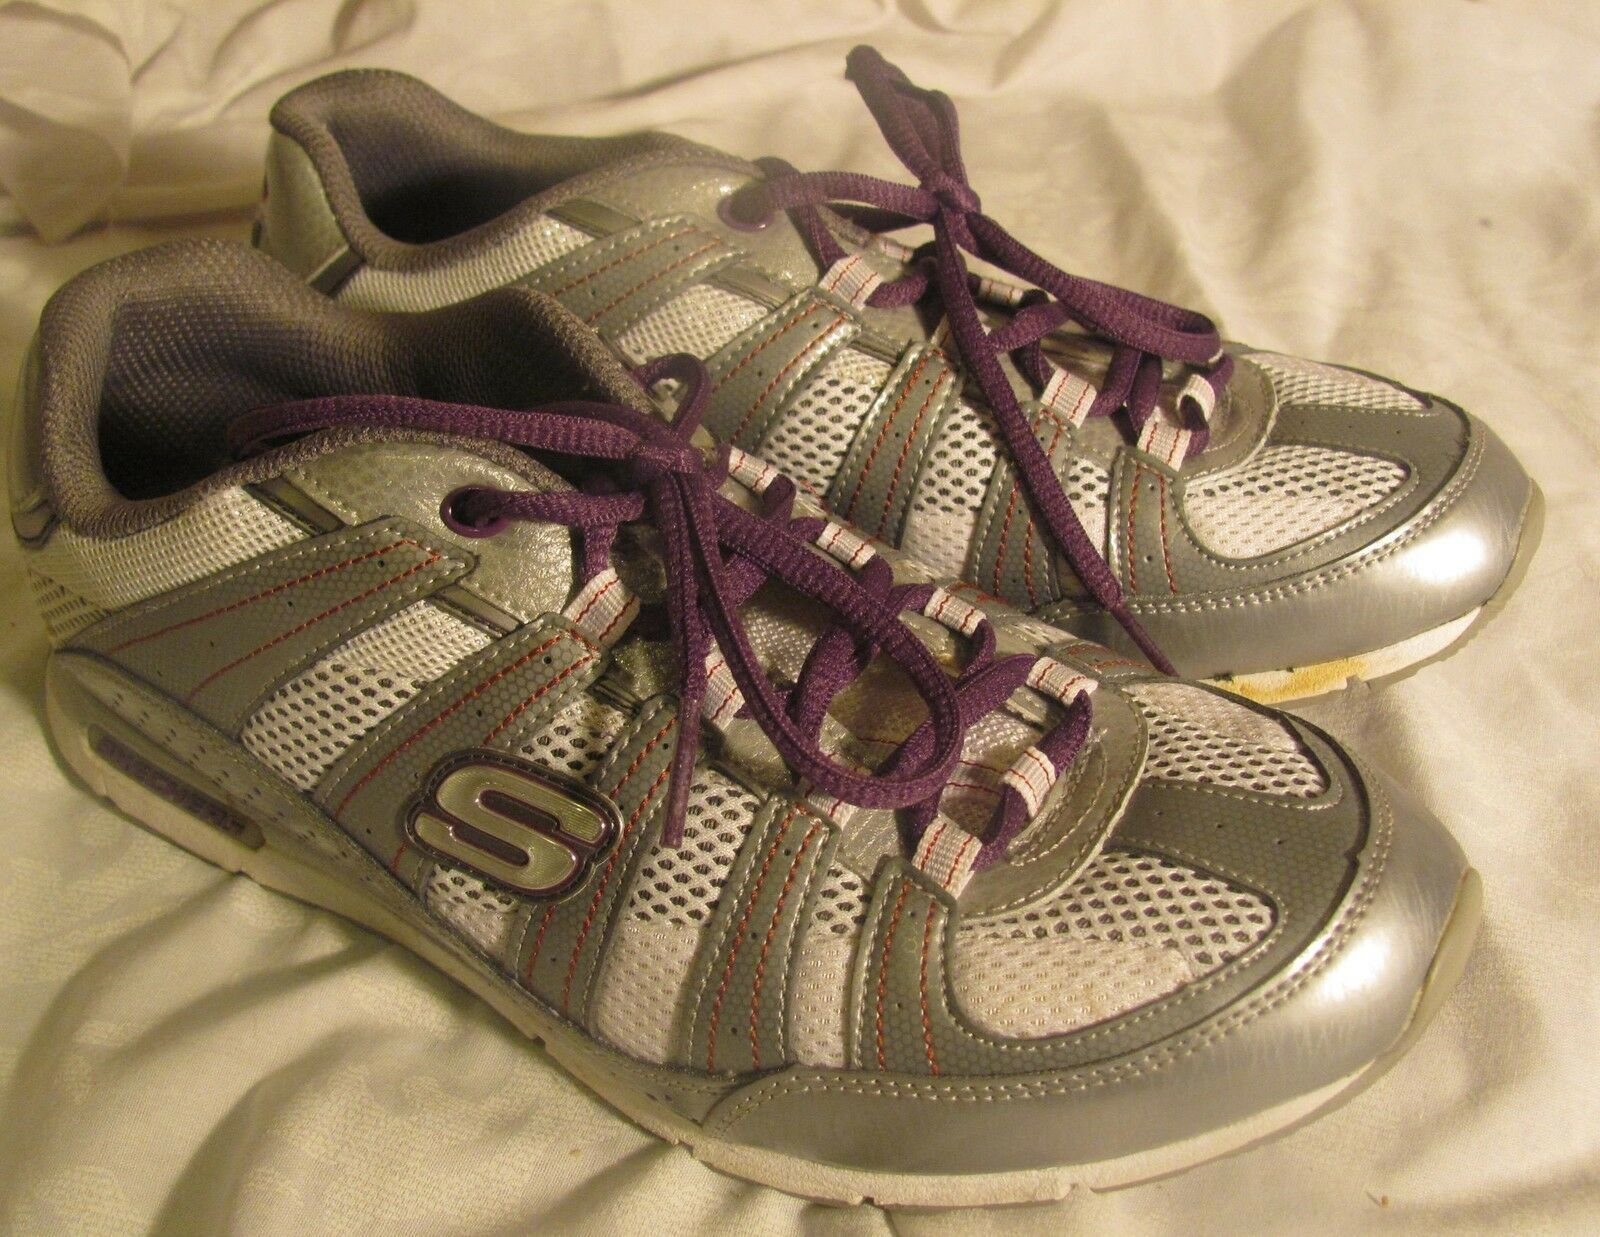 Sketchers size 8.5 shoes athletic nice